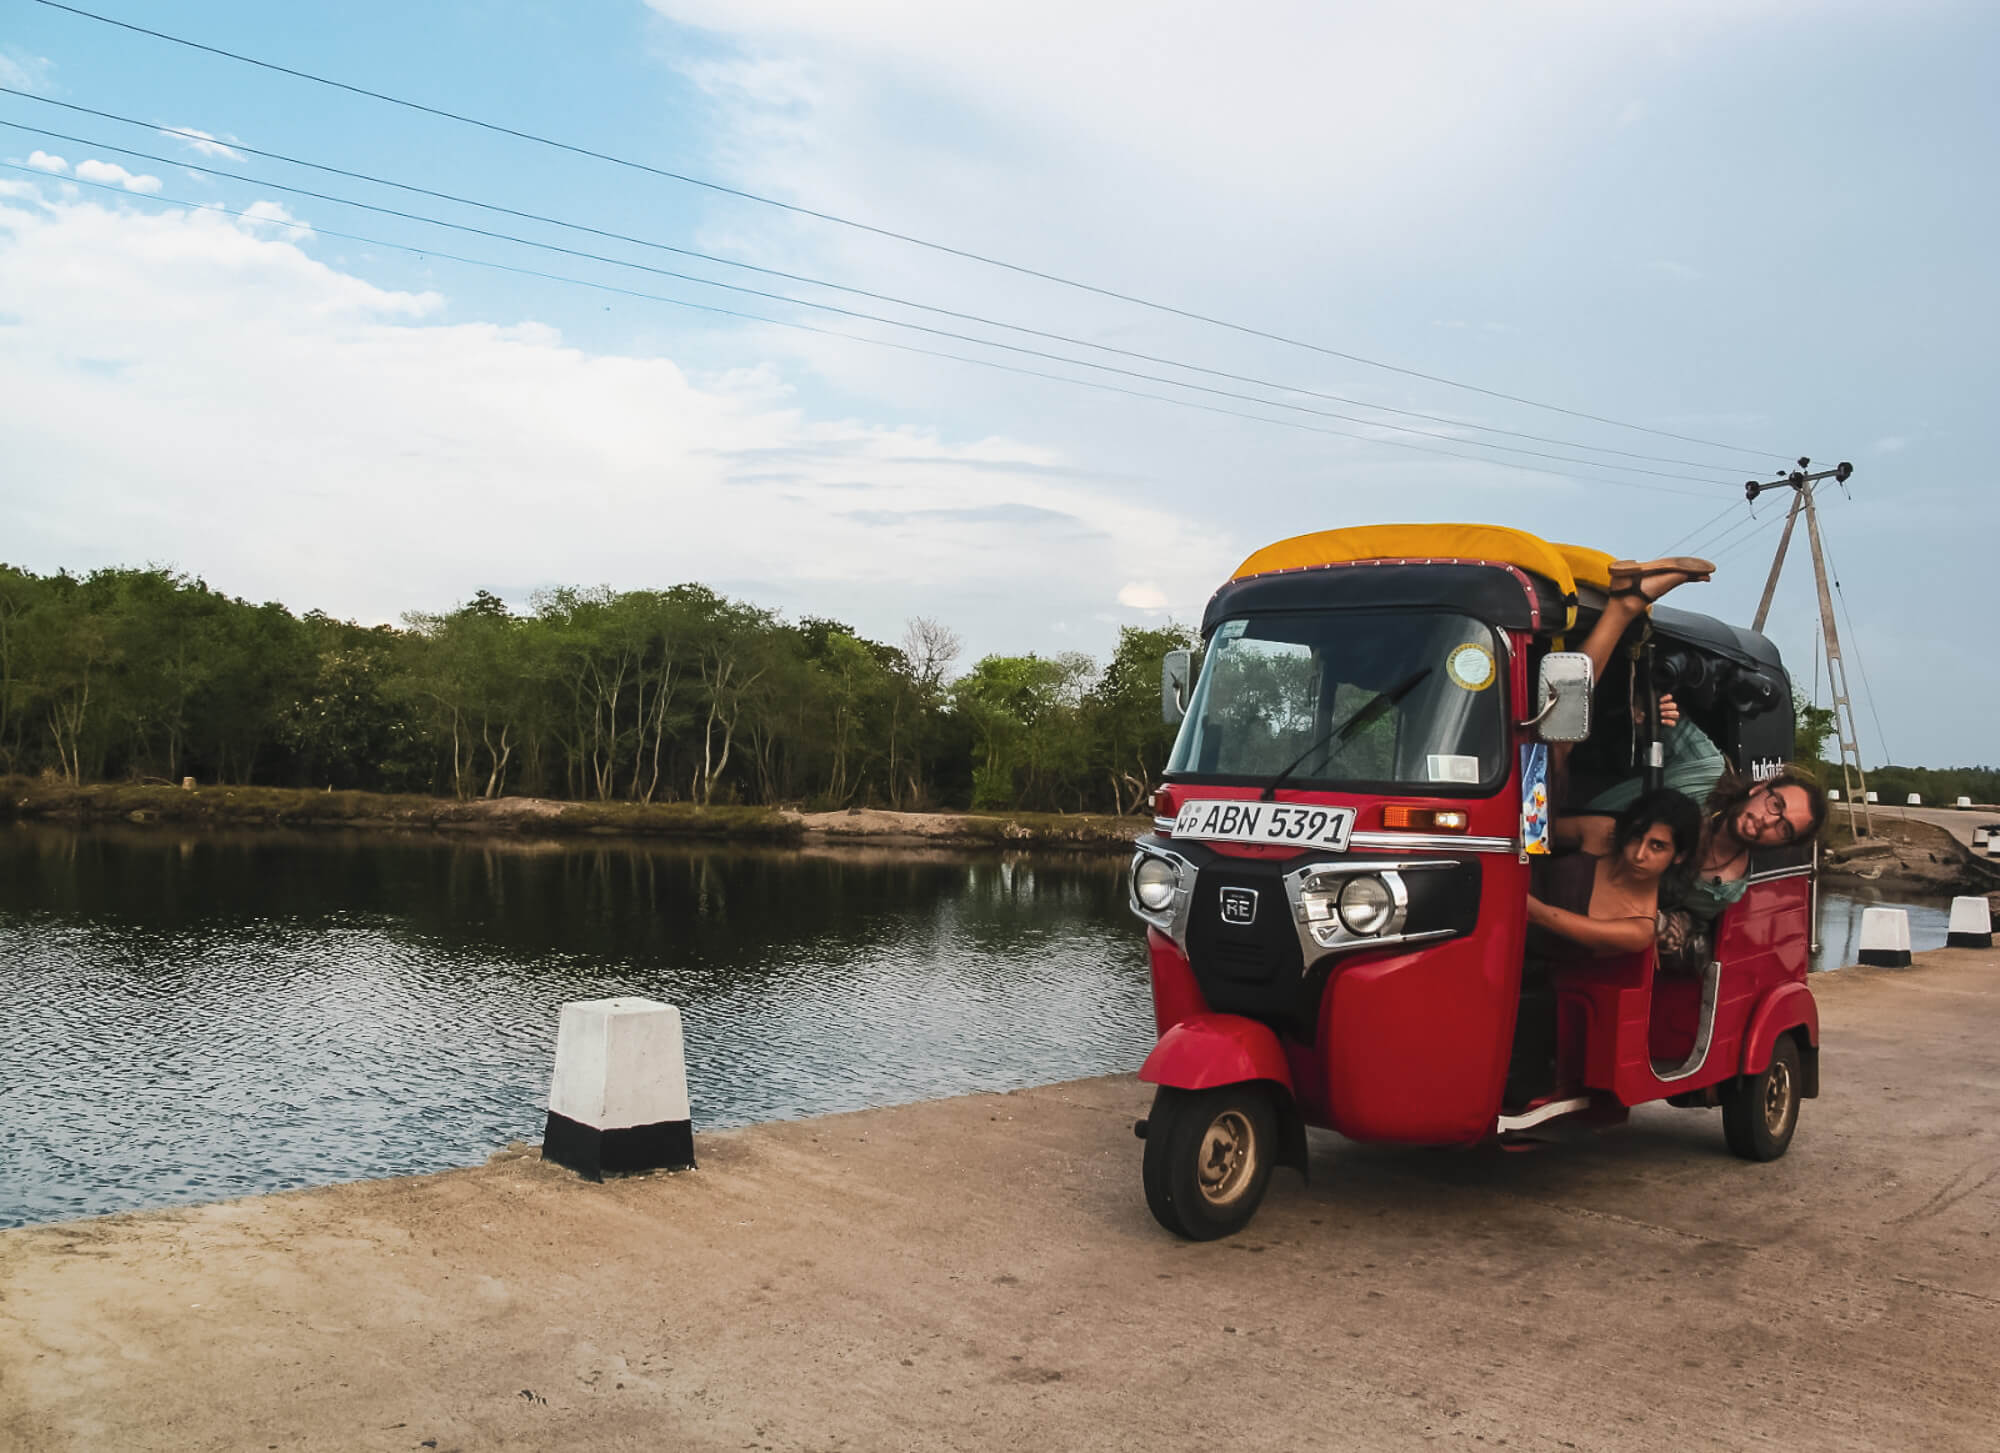 Two backpackers in their tuk-tuk rental in Sri Lanka - the best way to travel